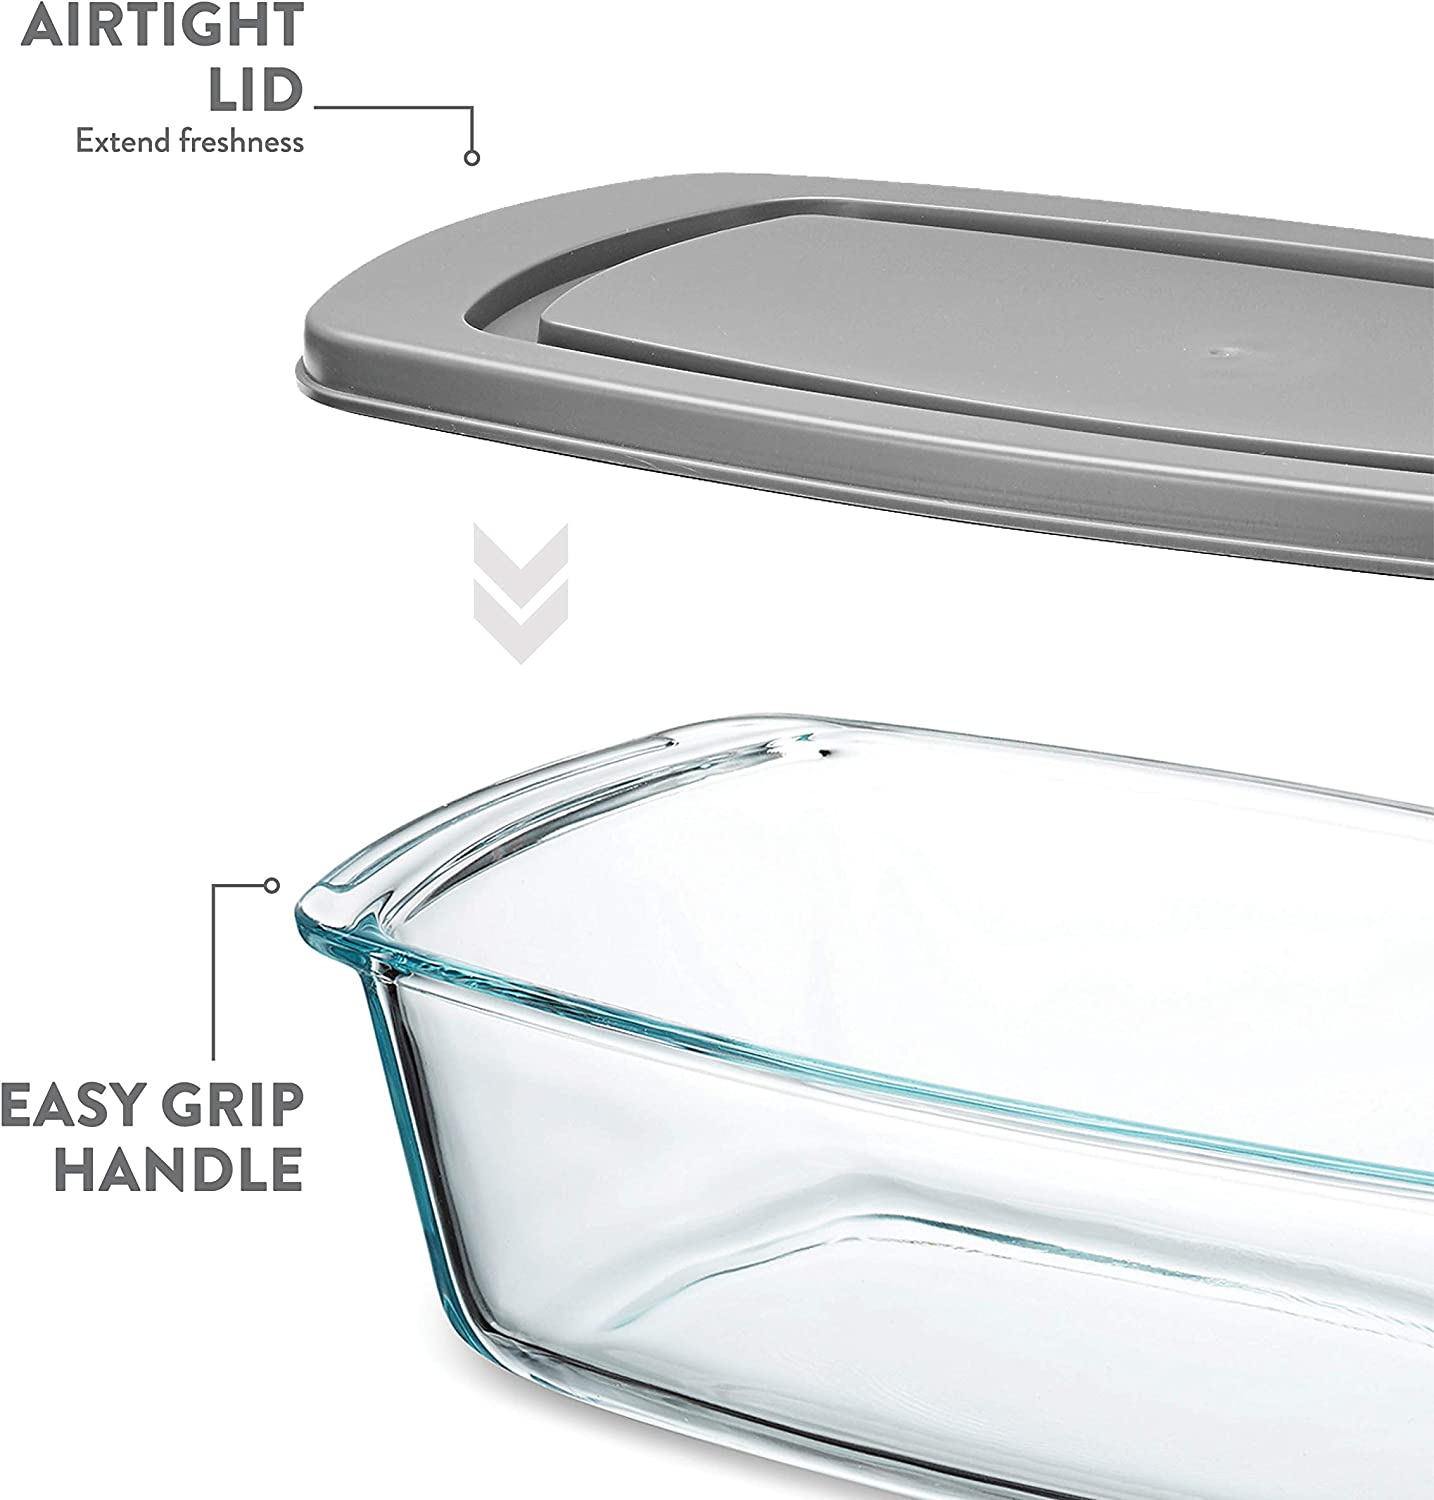 Loaf Pans For Baking Bread Superior Glass Loaf Tin With Cover 2 Piece Meatloaf Pan With BPA-free Airtight Lids Grip Handles for Easy Carry from Hot Oven To Table Pasta. Cakes